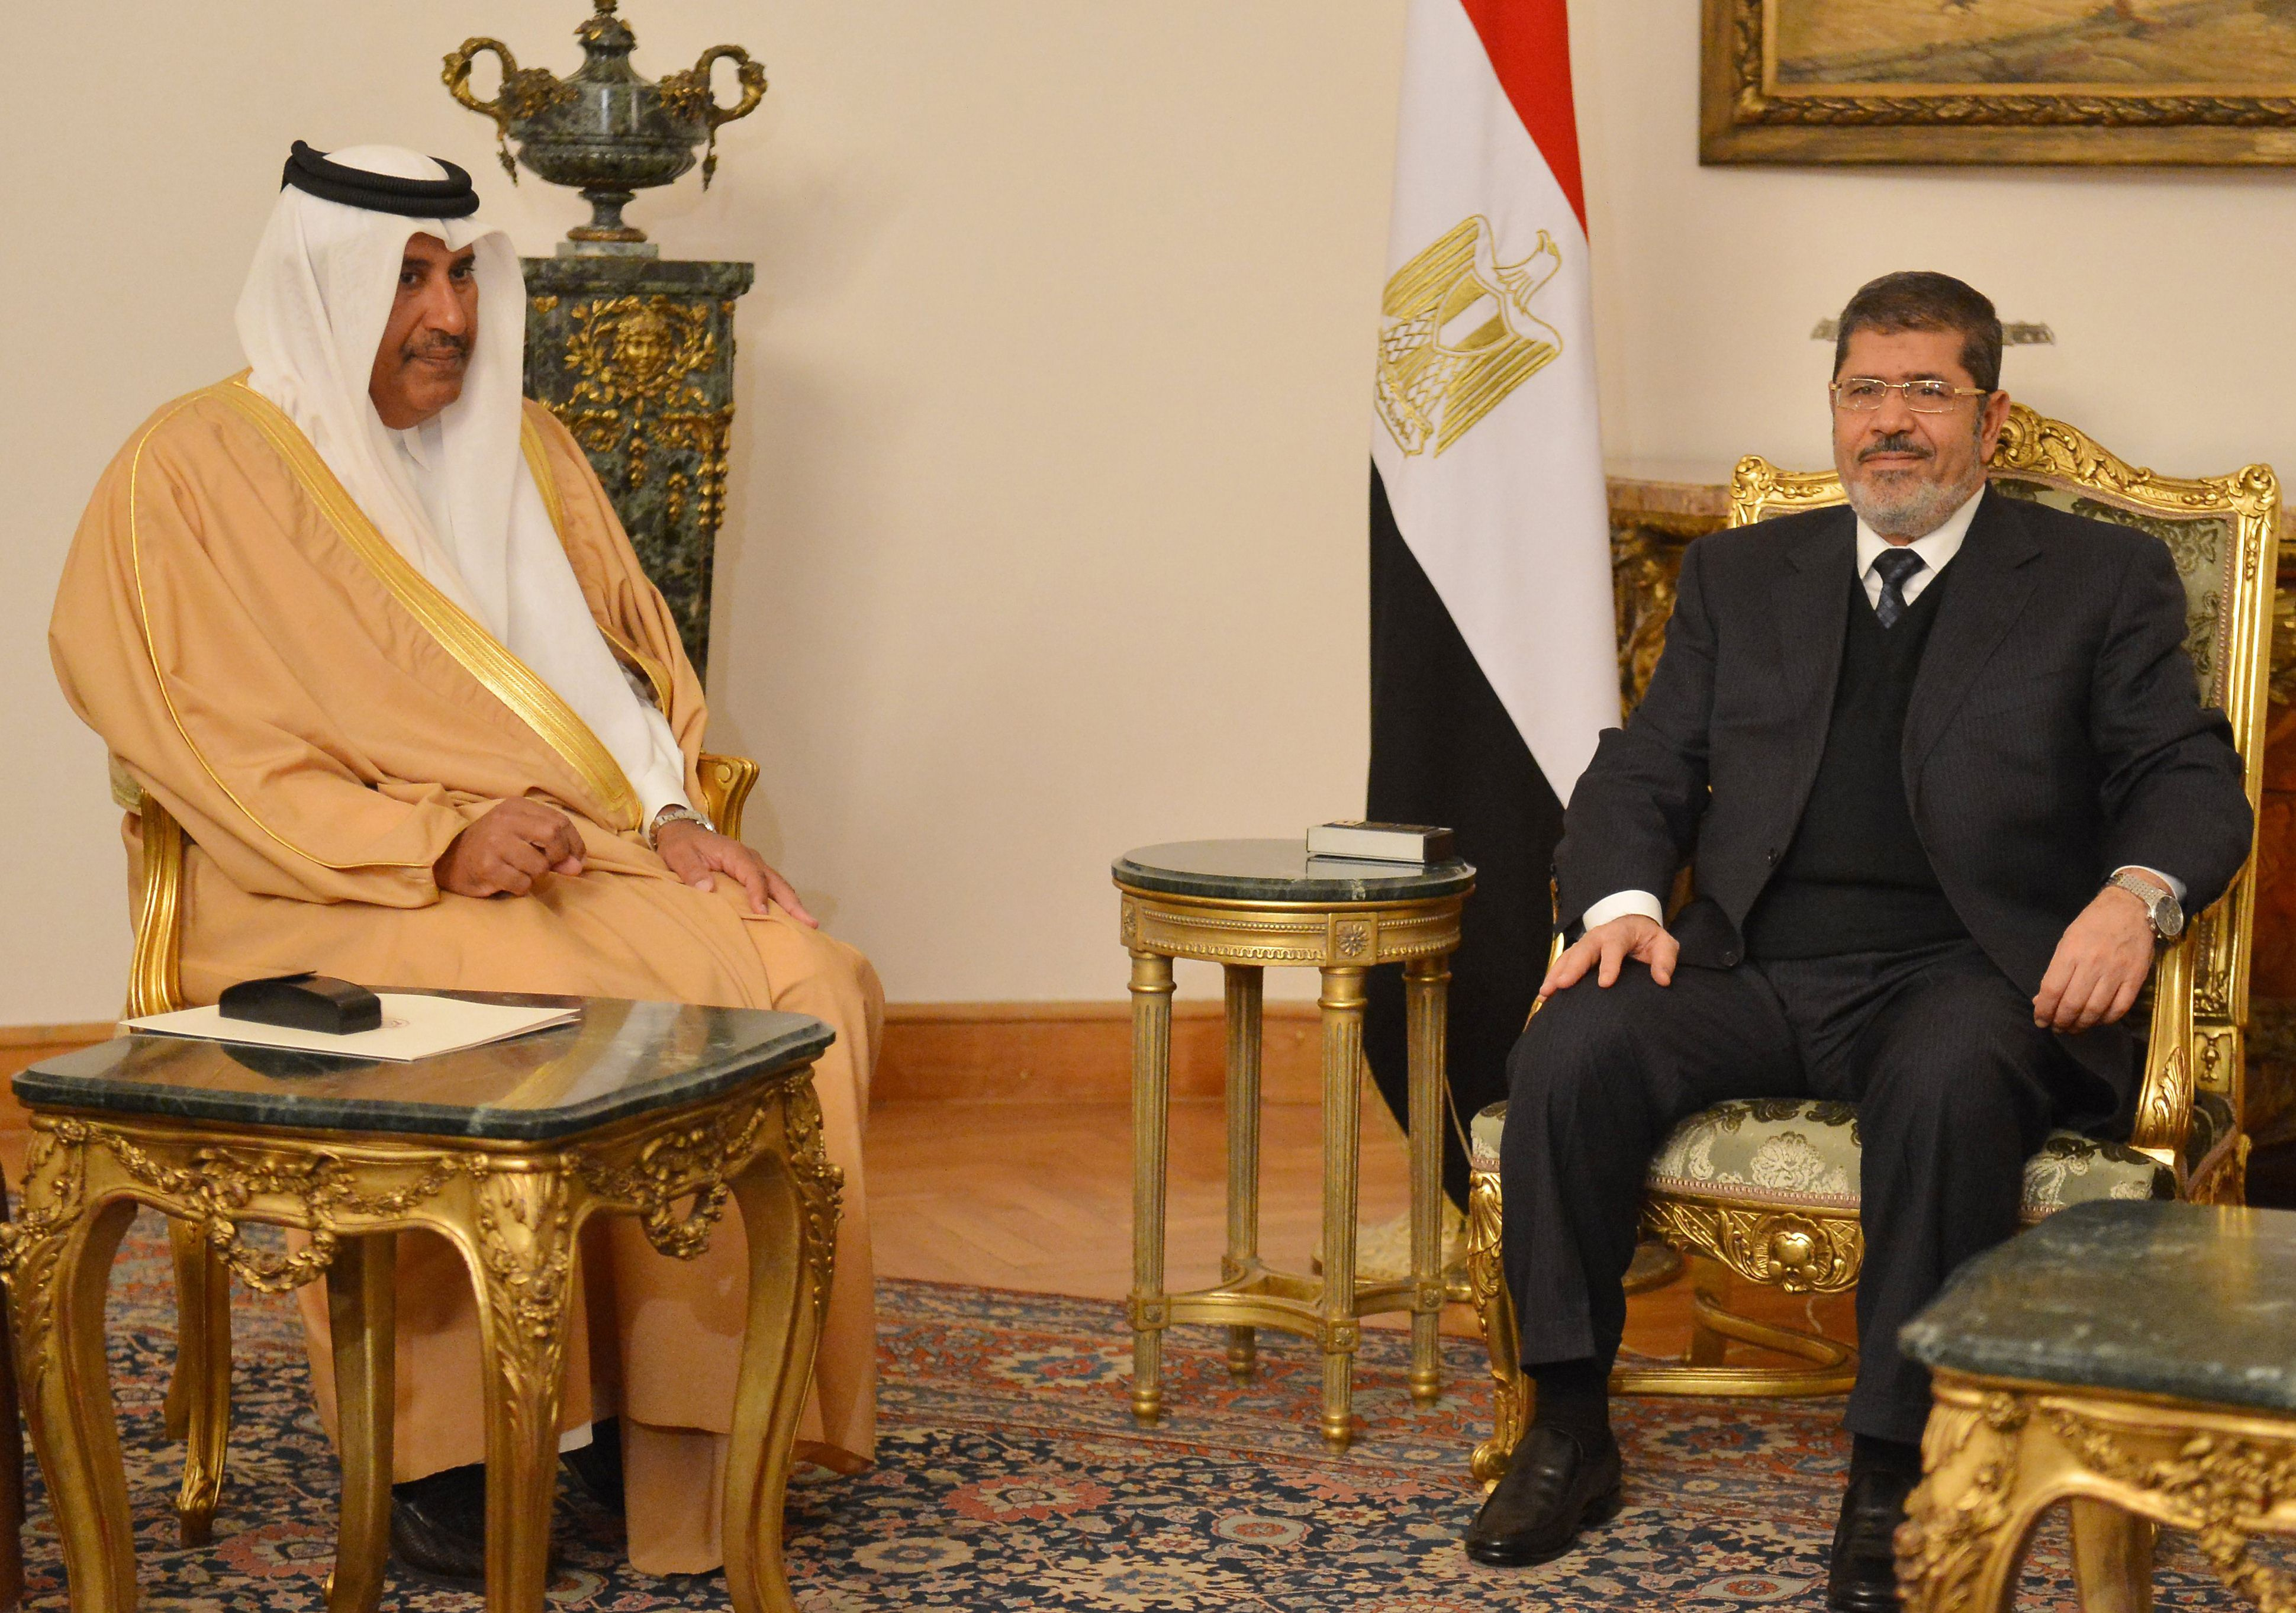 Egyptian President Mohamed Morsi (R) meets with Qatari Prime Minister and Foreign Minister Hamad bin Jassim Al-Thani in Cairo on January 8, 2013.    (AFP FILE PHOTO / KHALED DESOUKI)